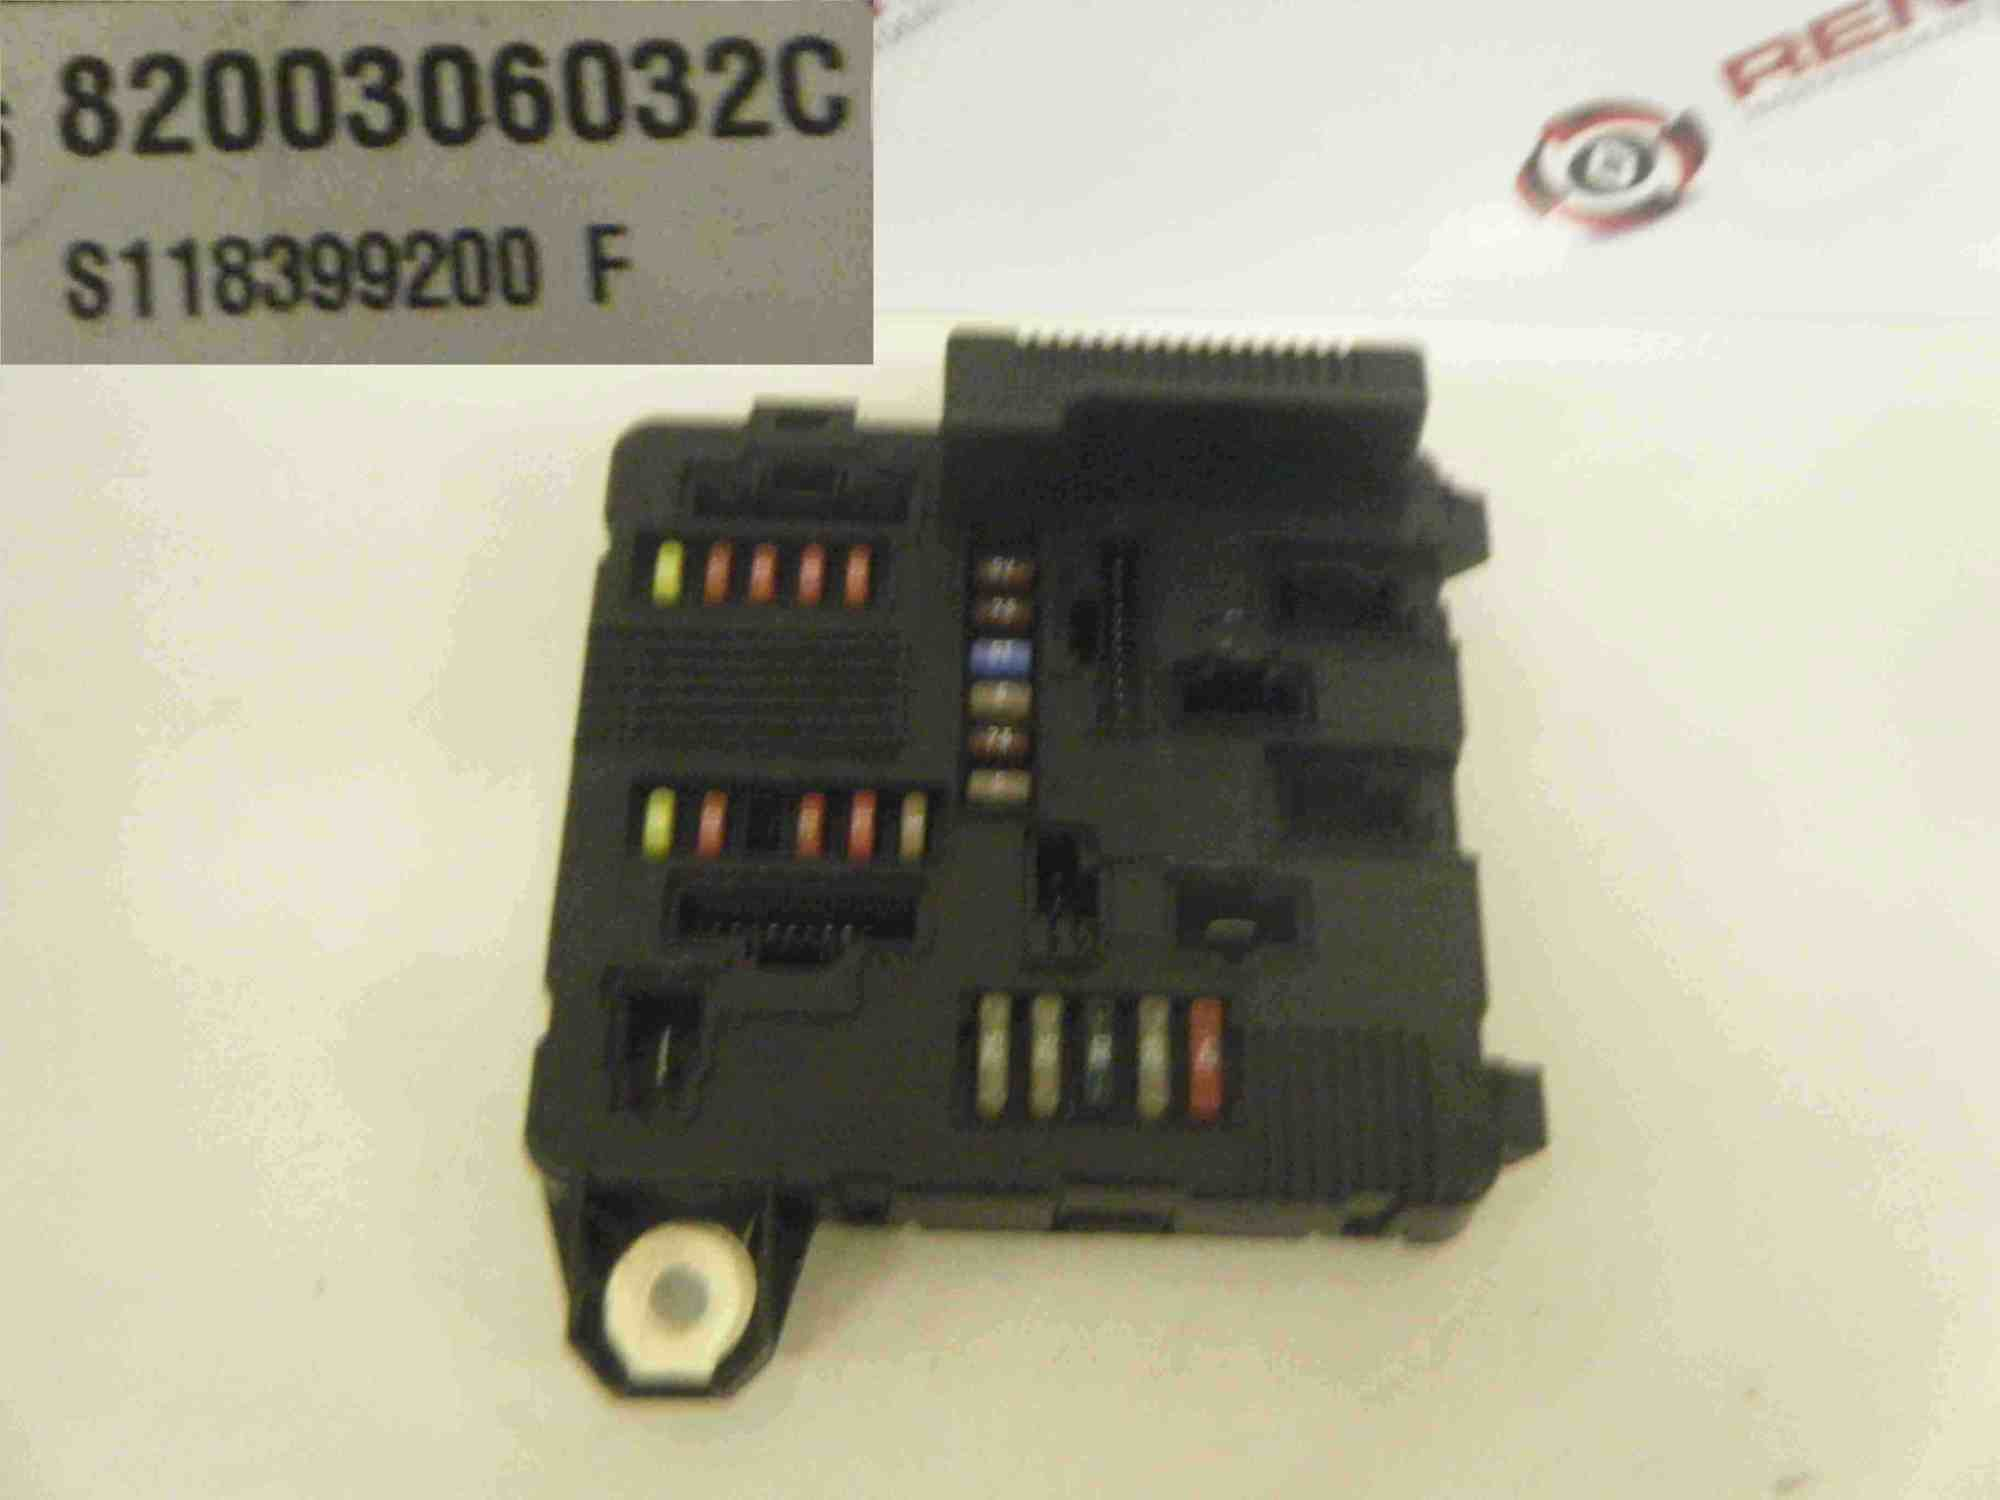 hight resolution of renault megane scenic 2003 2008 fuse box relay bcm 8200306032 store renault breakers used renault car parts spares specialist